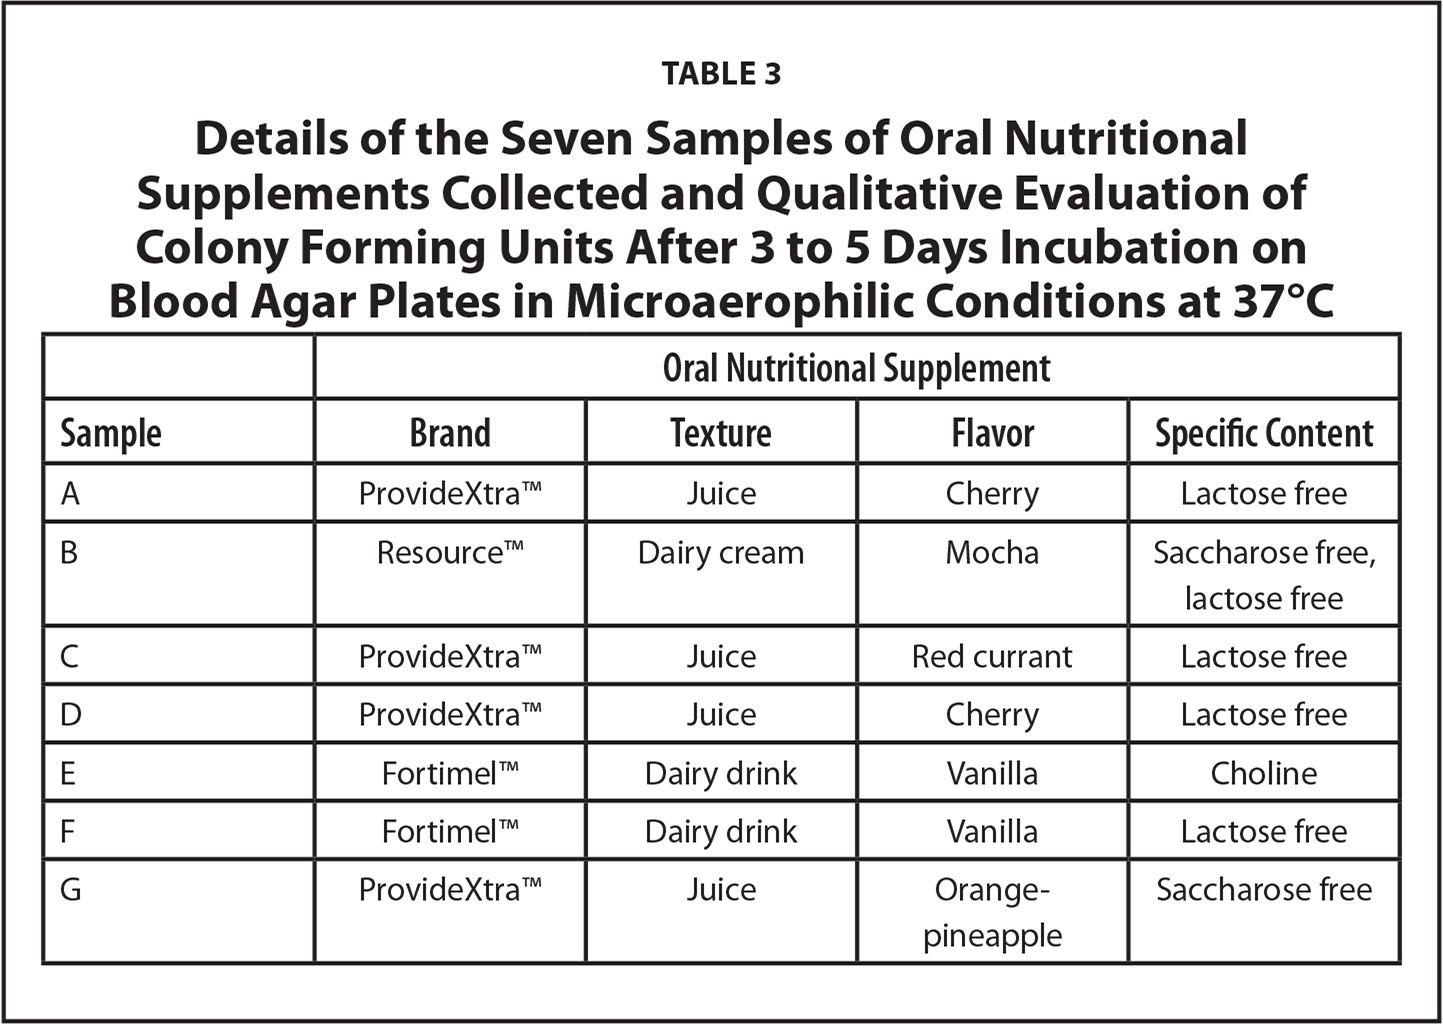 Details of the Seven Samples of Oral Nutritional Supplements Collected and Qualitative Evaluation of Colony Forming Units After 3 to 5 Days Incubation on Blood Agar Plates in Microaerophilic Conditions at 37°C